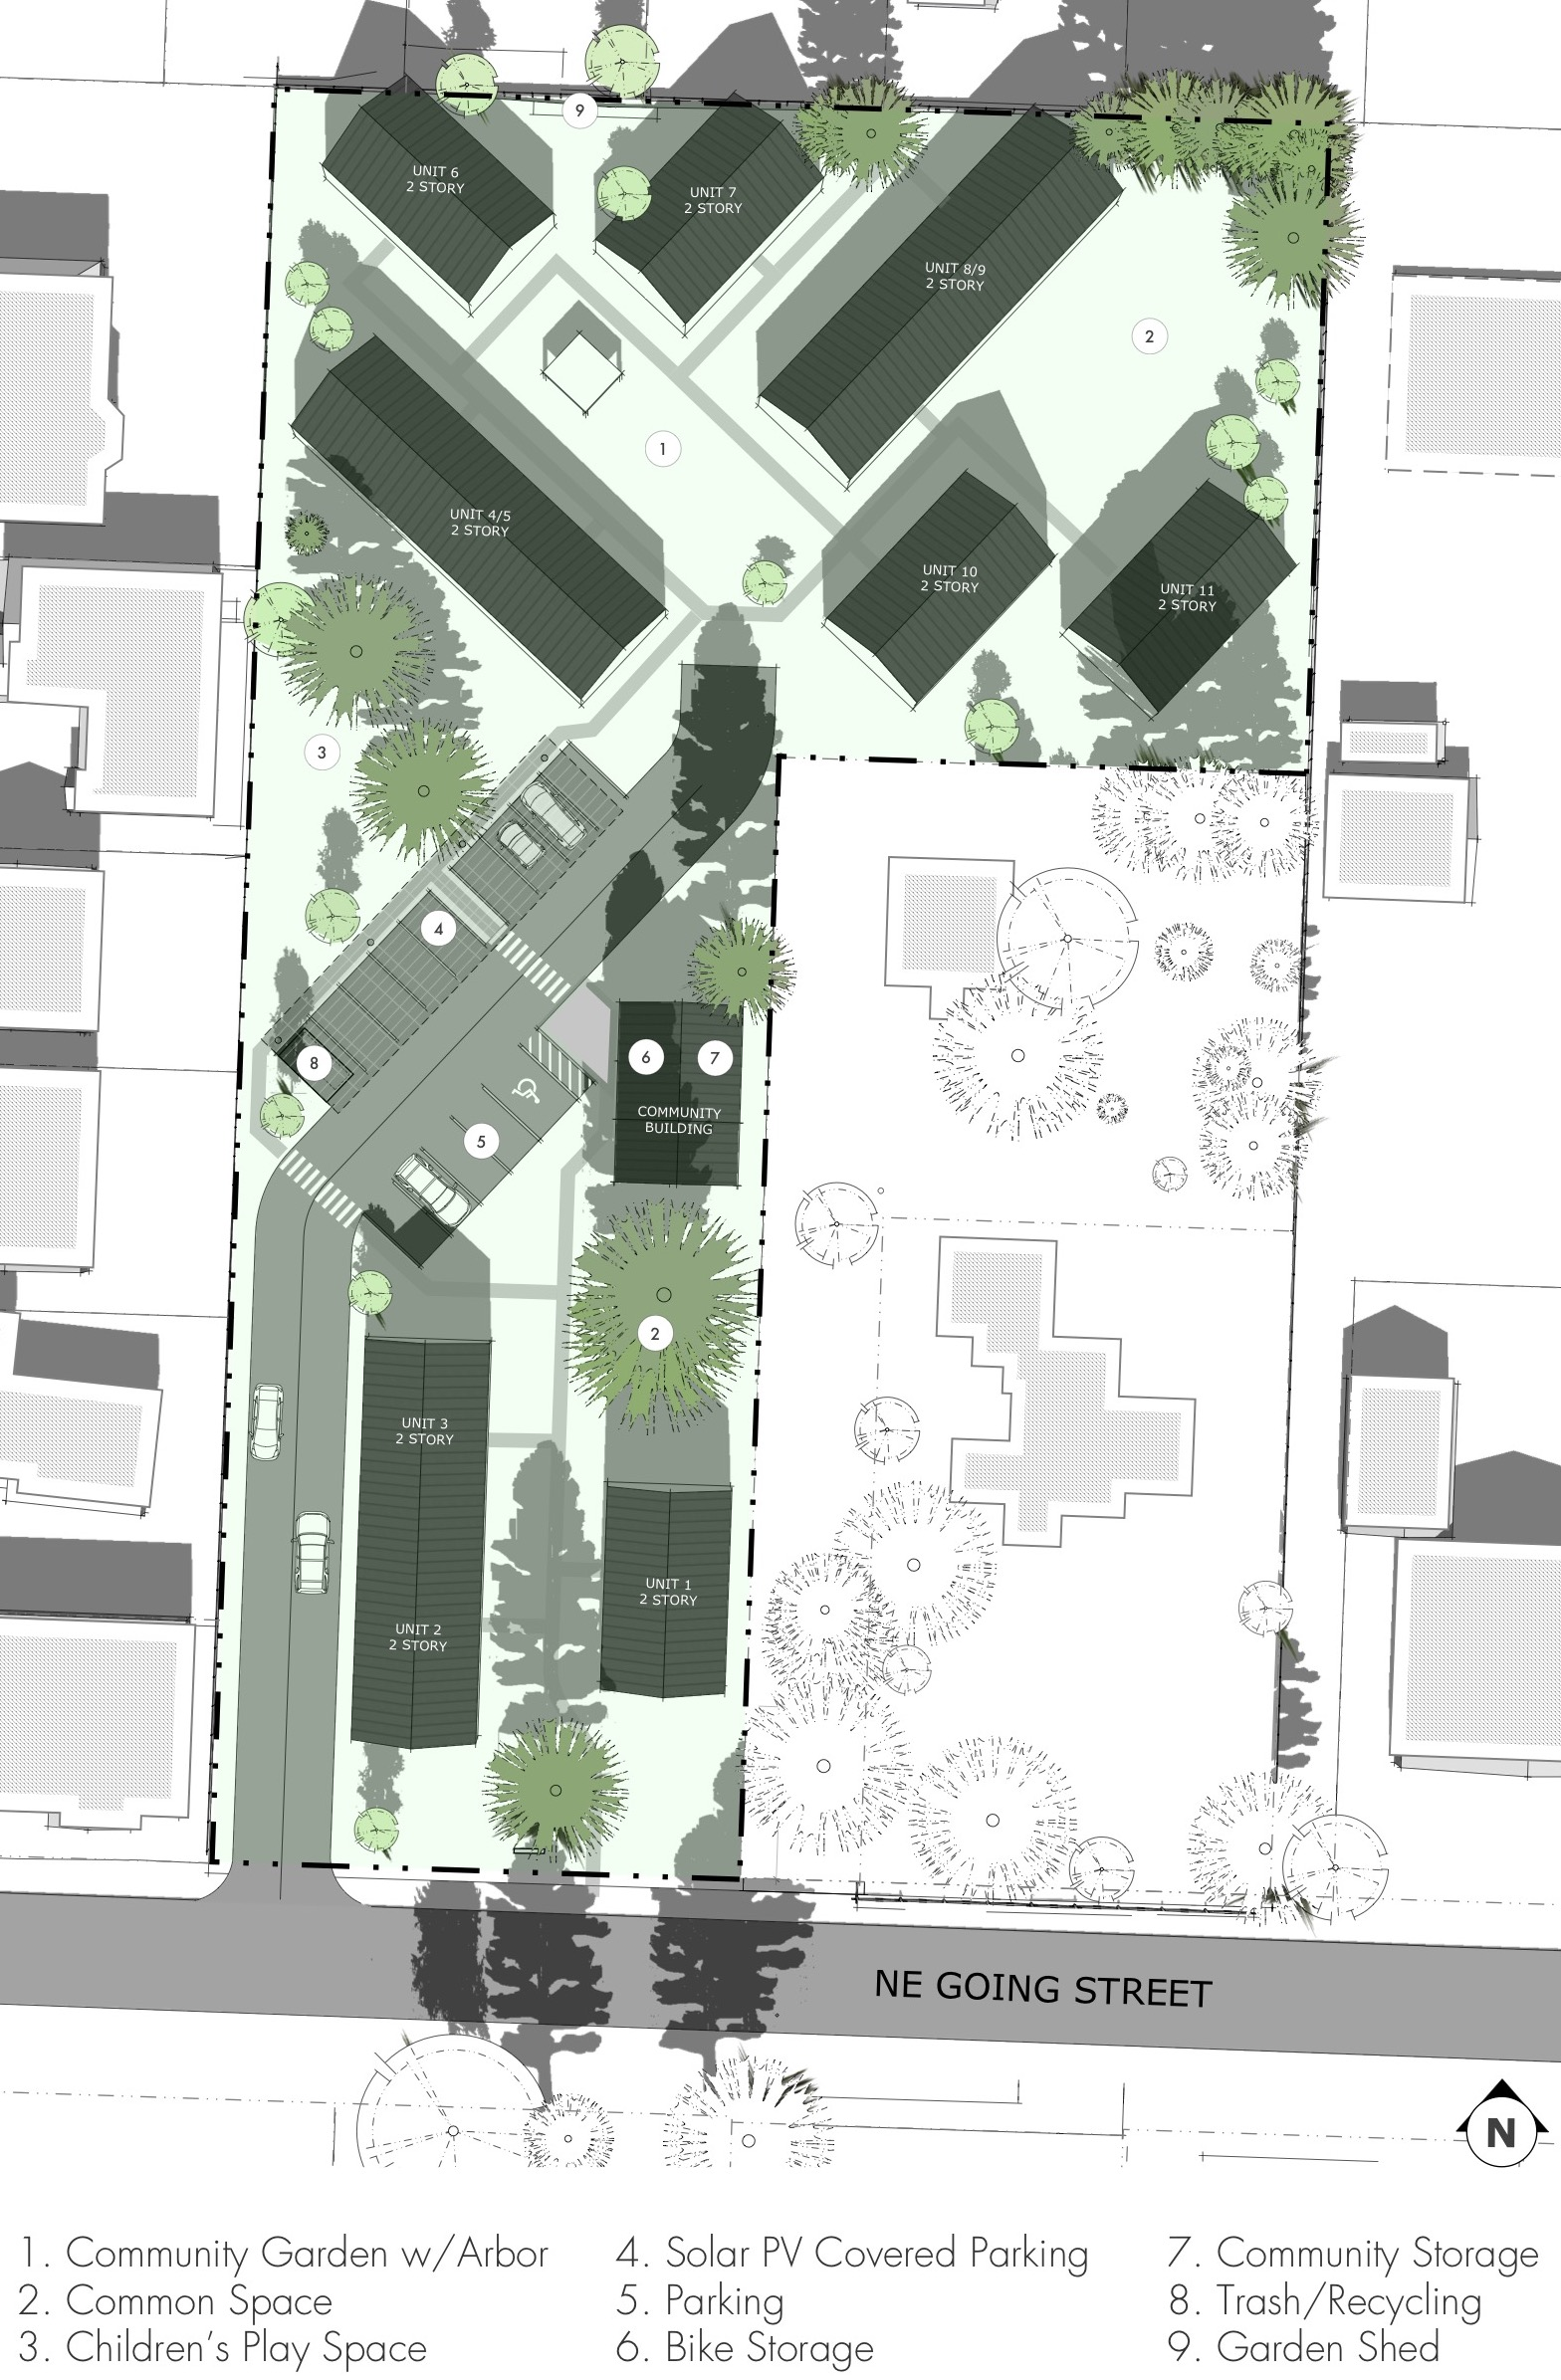 Birdsmouth-Going-Street-Commons-Site-Plan.jpg